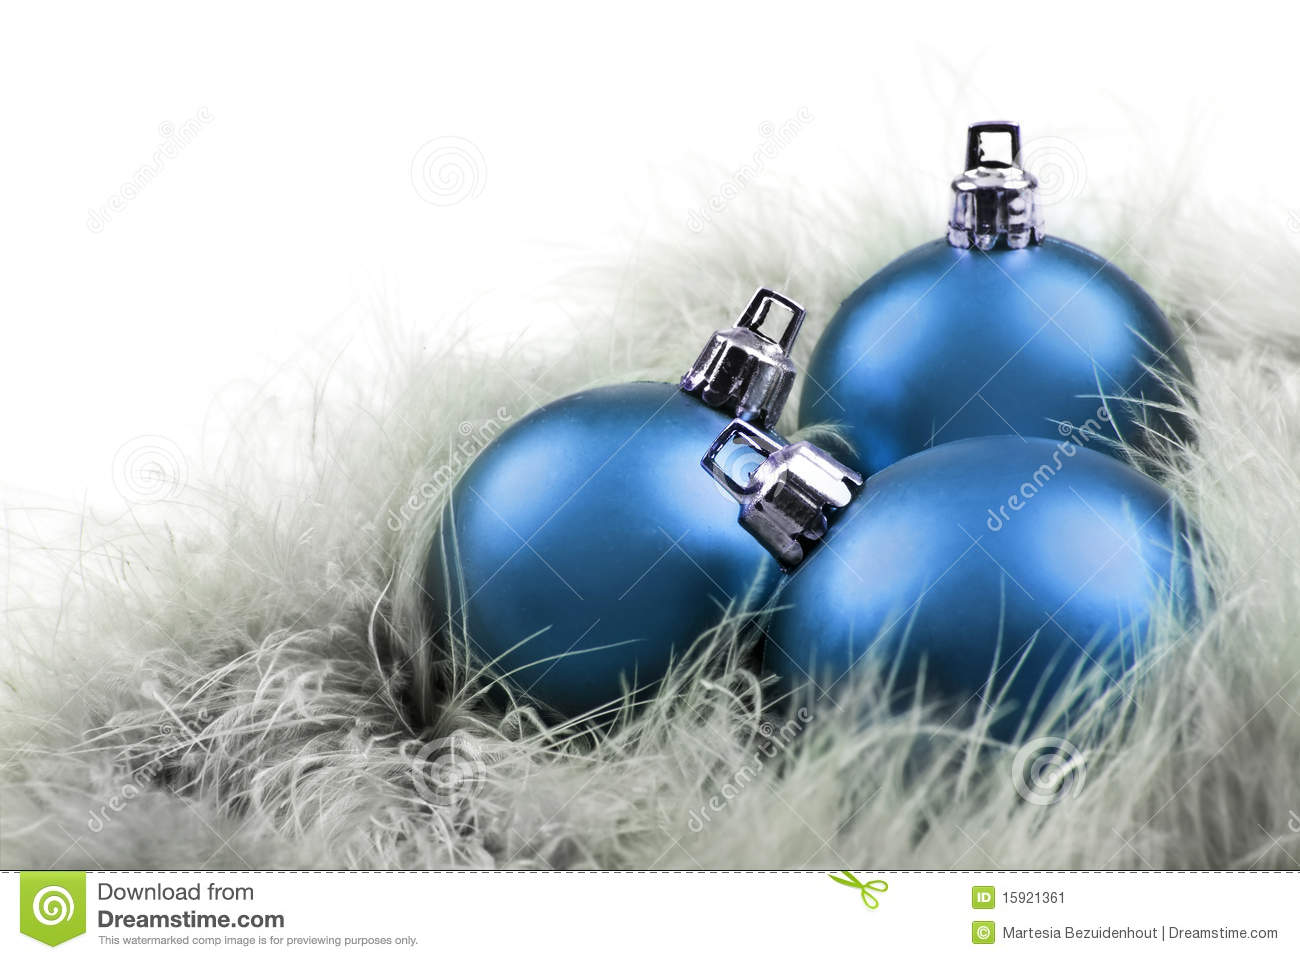 Weihnachtskugeln Blau.Christmas Balls In In Blue On Feathers Stock Image Image Of Hang